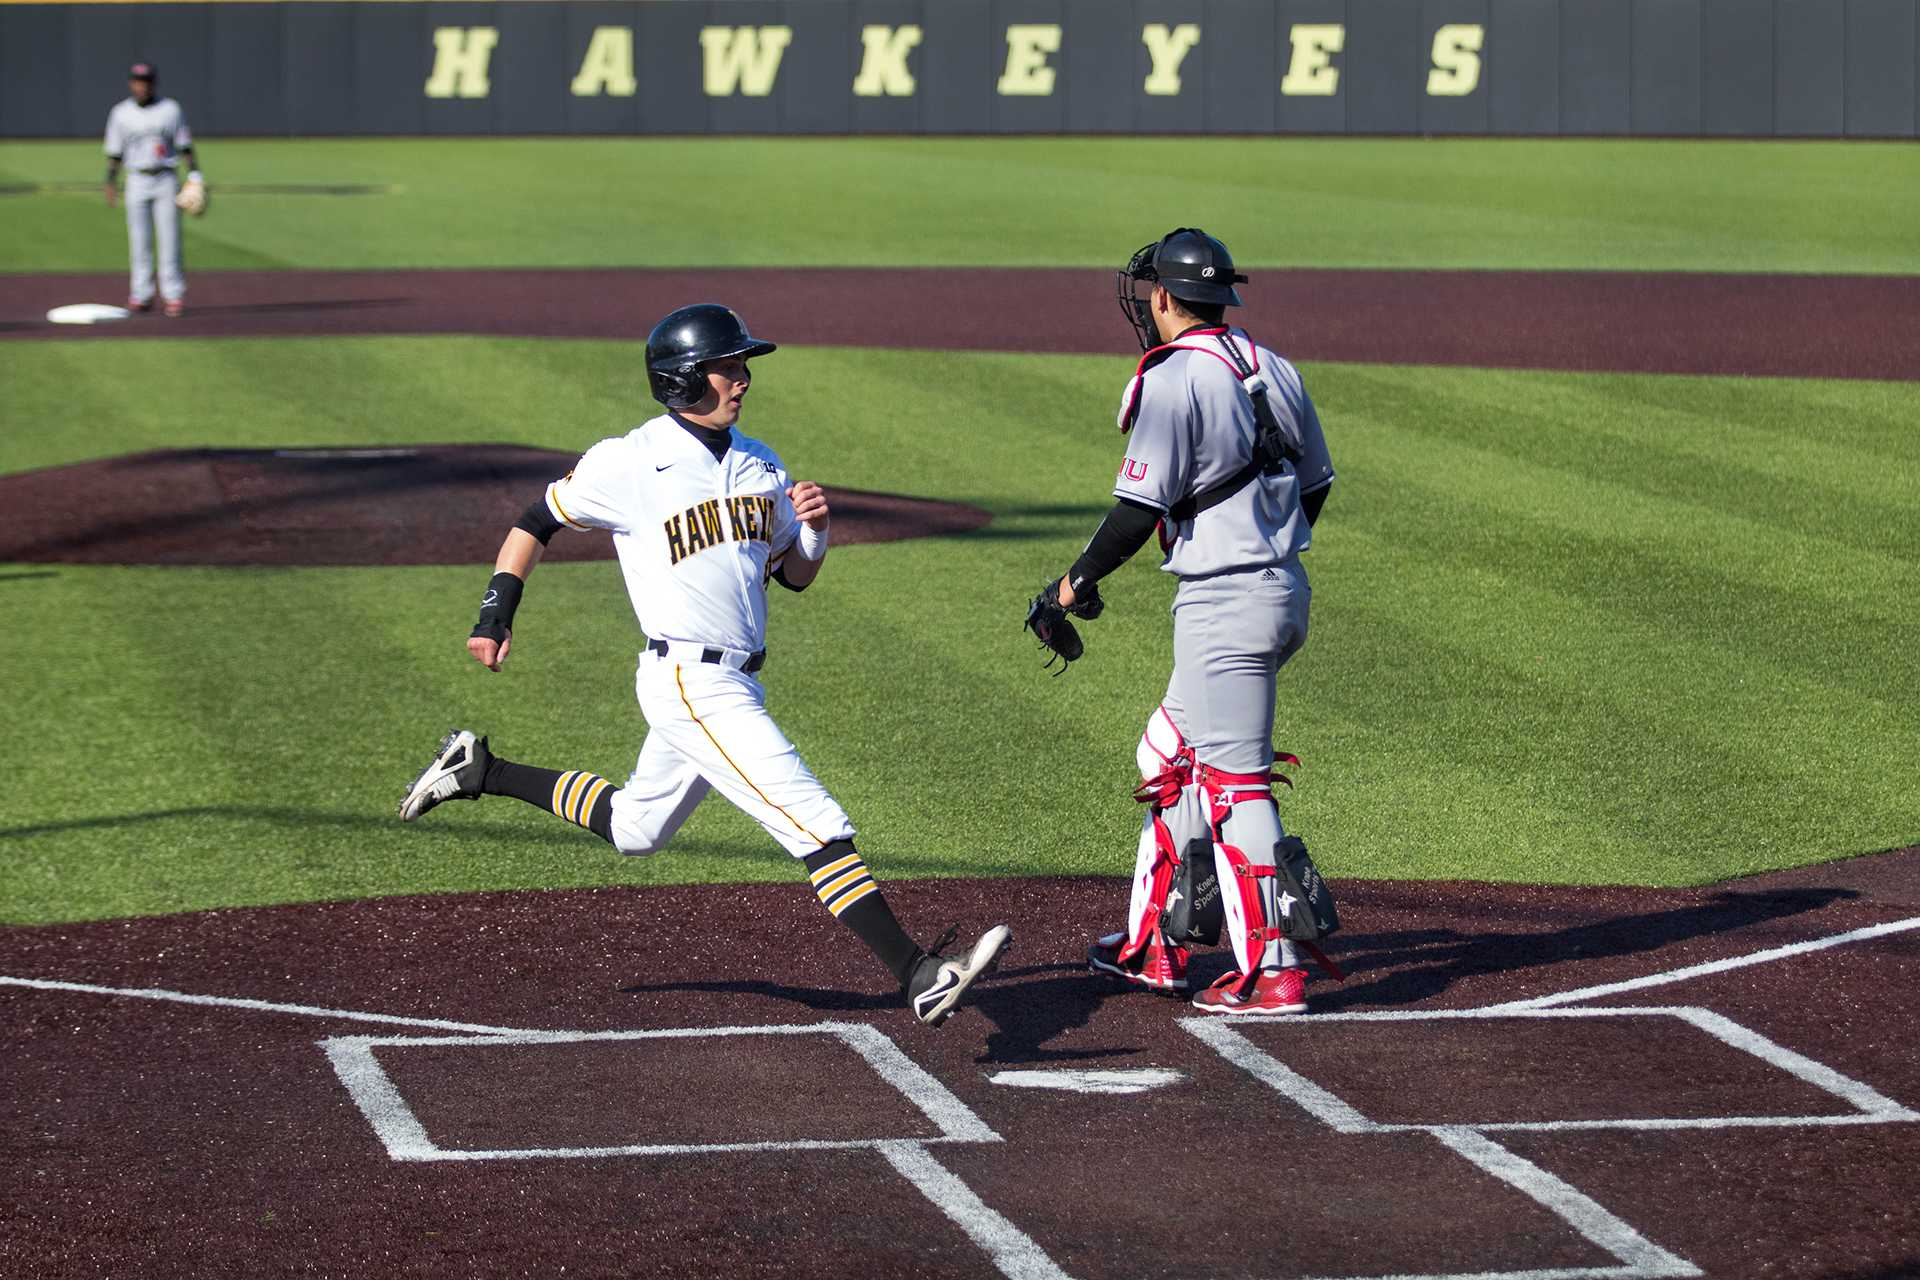 Tyler Cropley scores a run during Iowa baseball vs. Northern Illinois at Banks Field on April 17, 2018. The Hawkeyes won the game 2-0. (Megan Nagorzanski/The Daily Iowan)